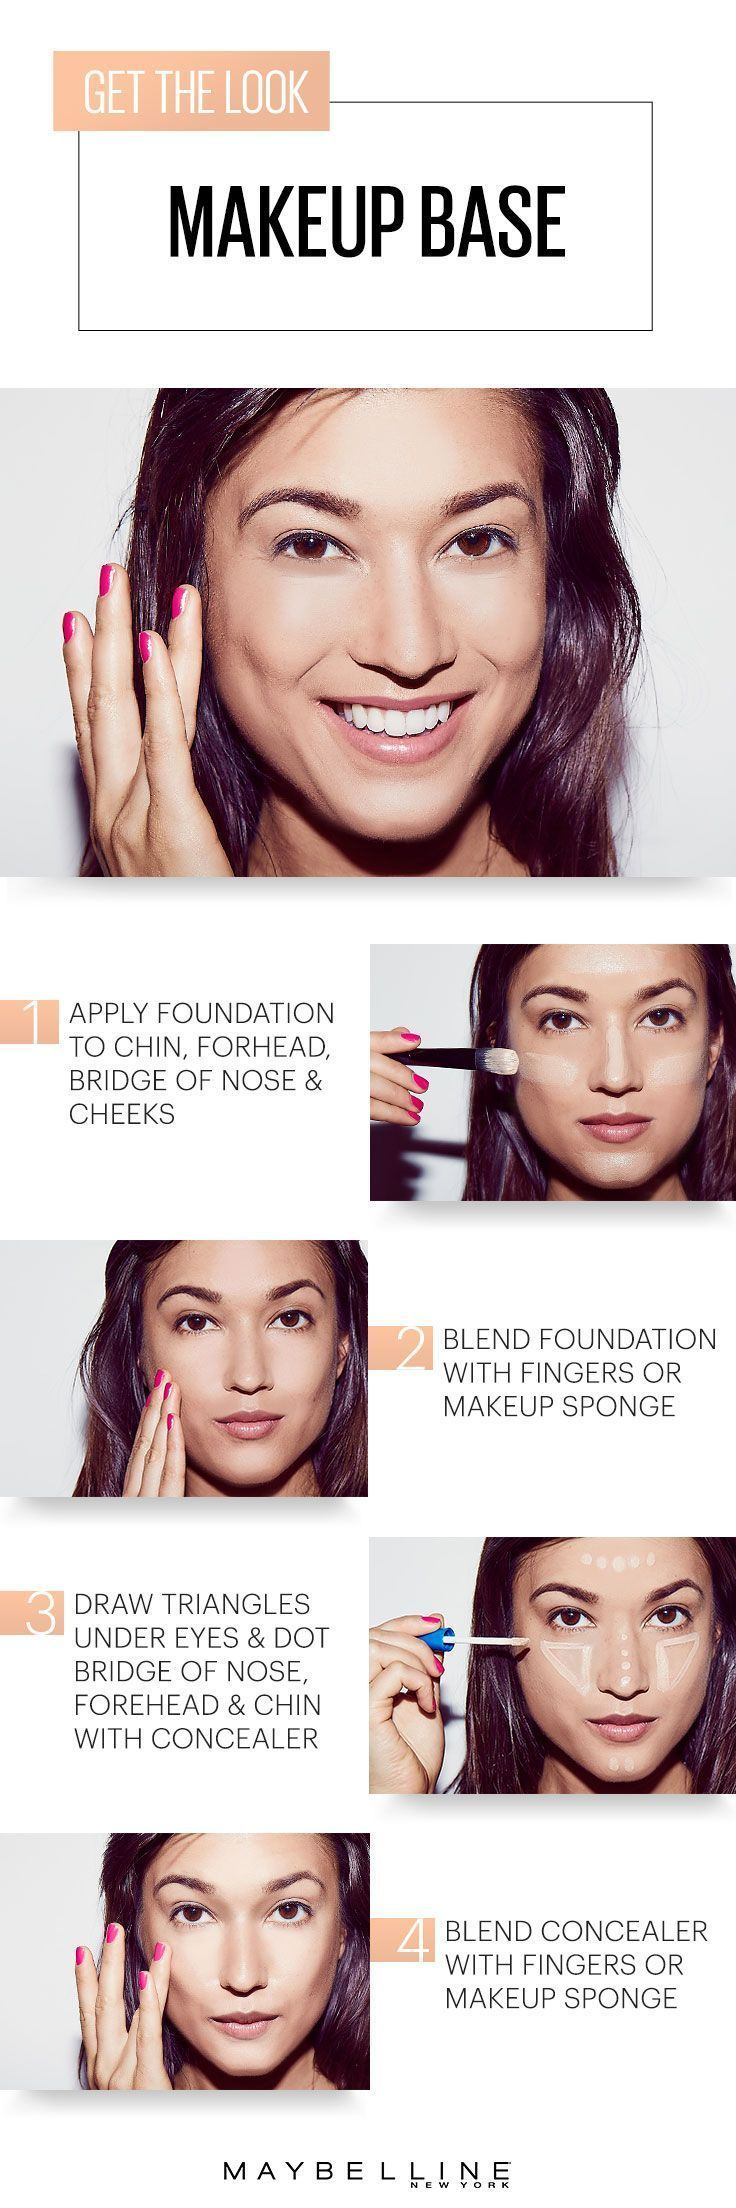 25+ best ideas about No foundation foundation on Pinterest | Face ...